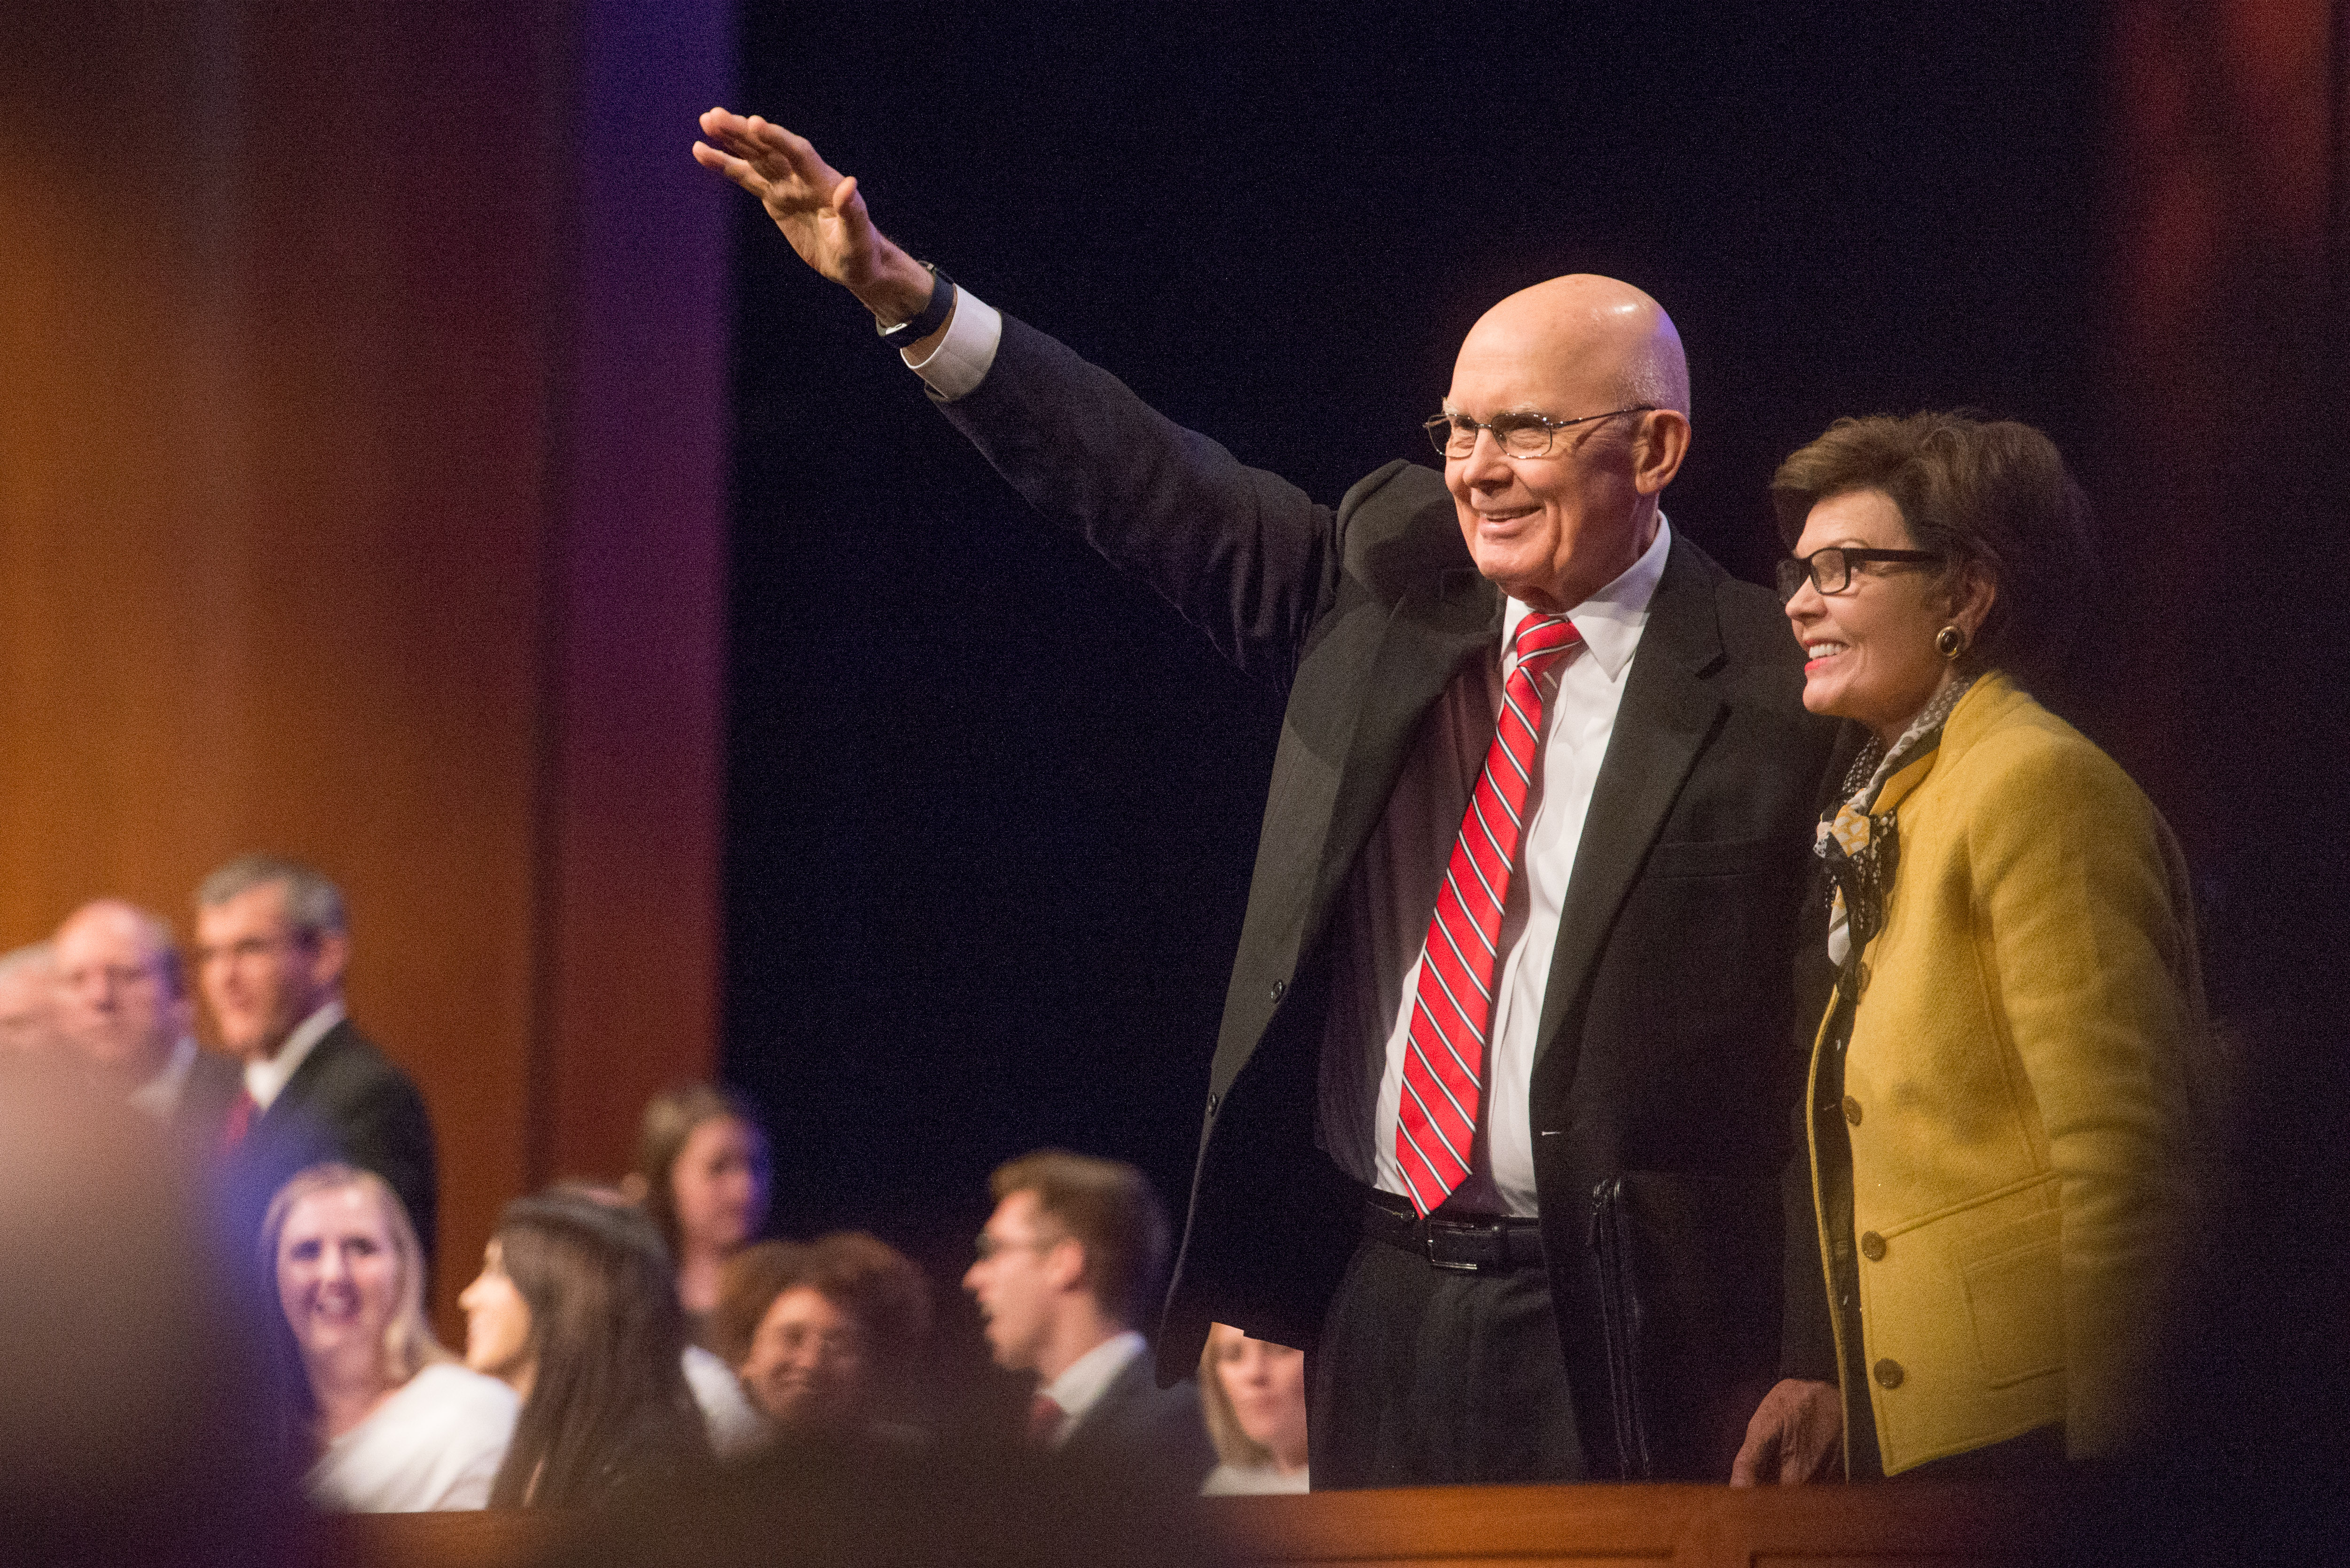 President Dallin H. Oaks of the First Presidency and his wife, Sister Kristen M. Oaks, wave to students at a BYU-Idaho campus devotional on Oct. 30.